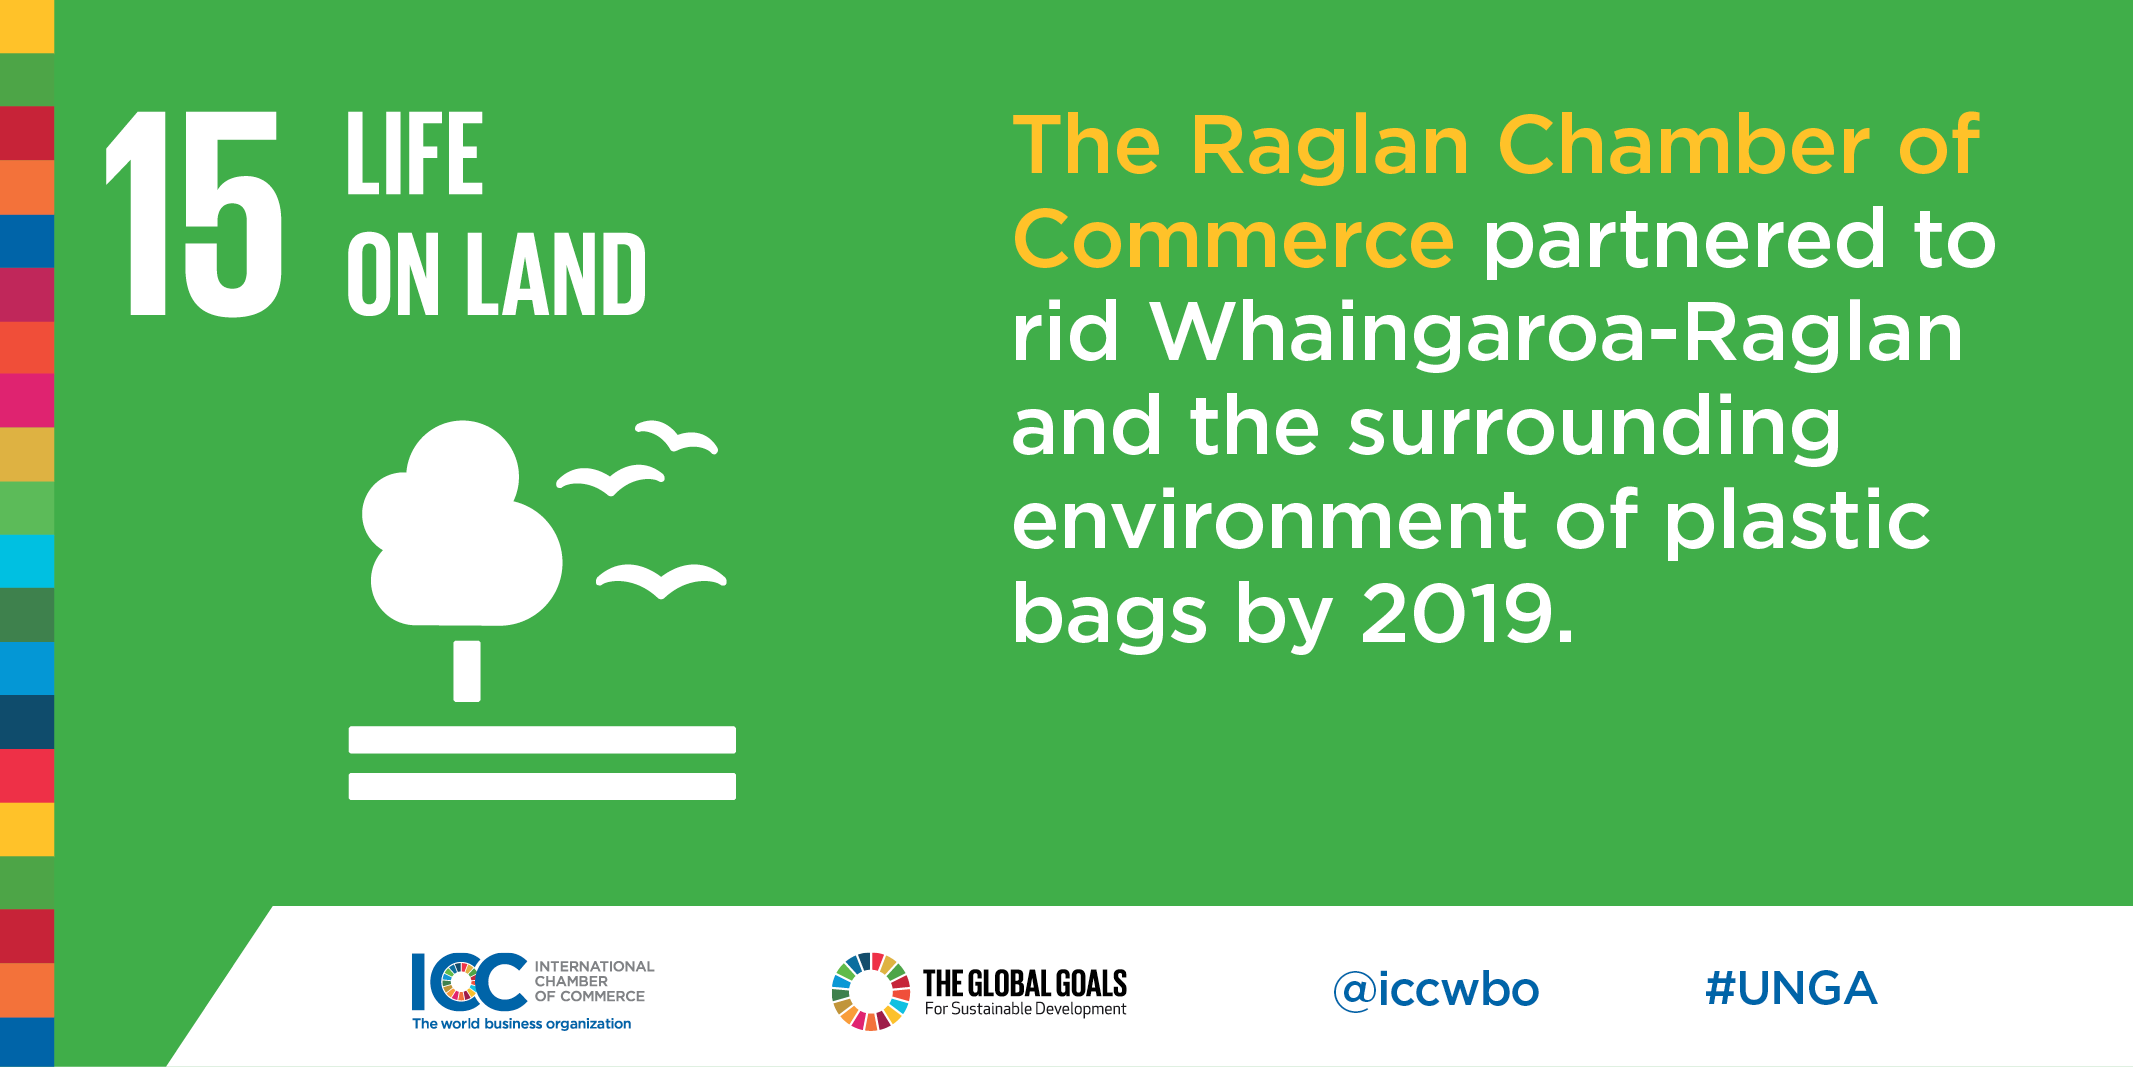 ICC Business Commits Plastic Pollution Raglan